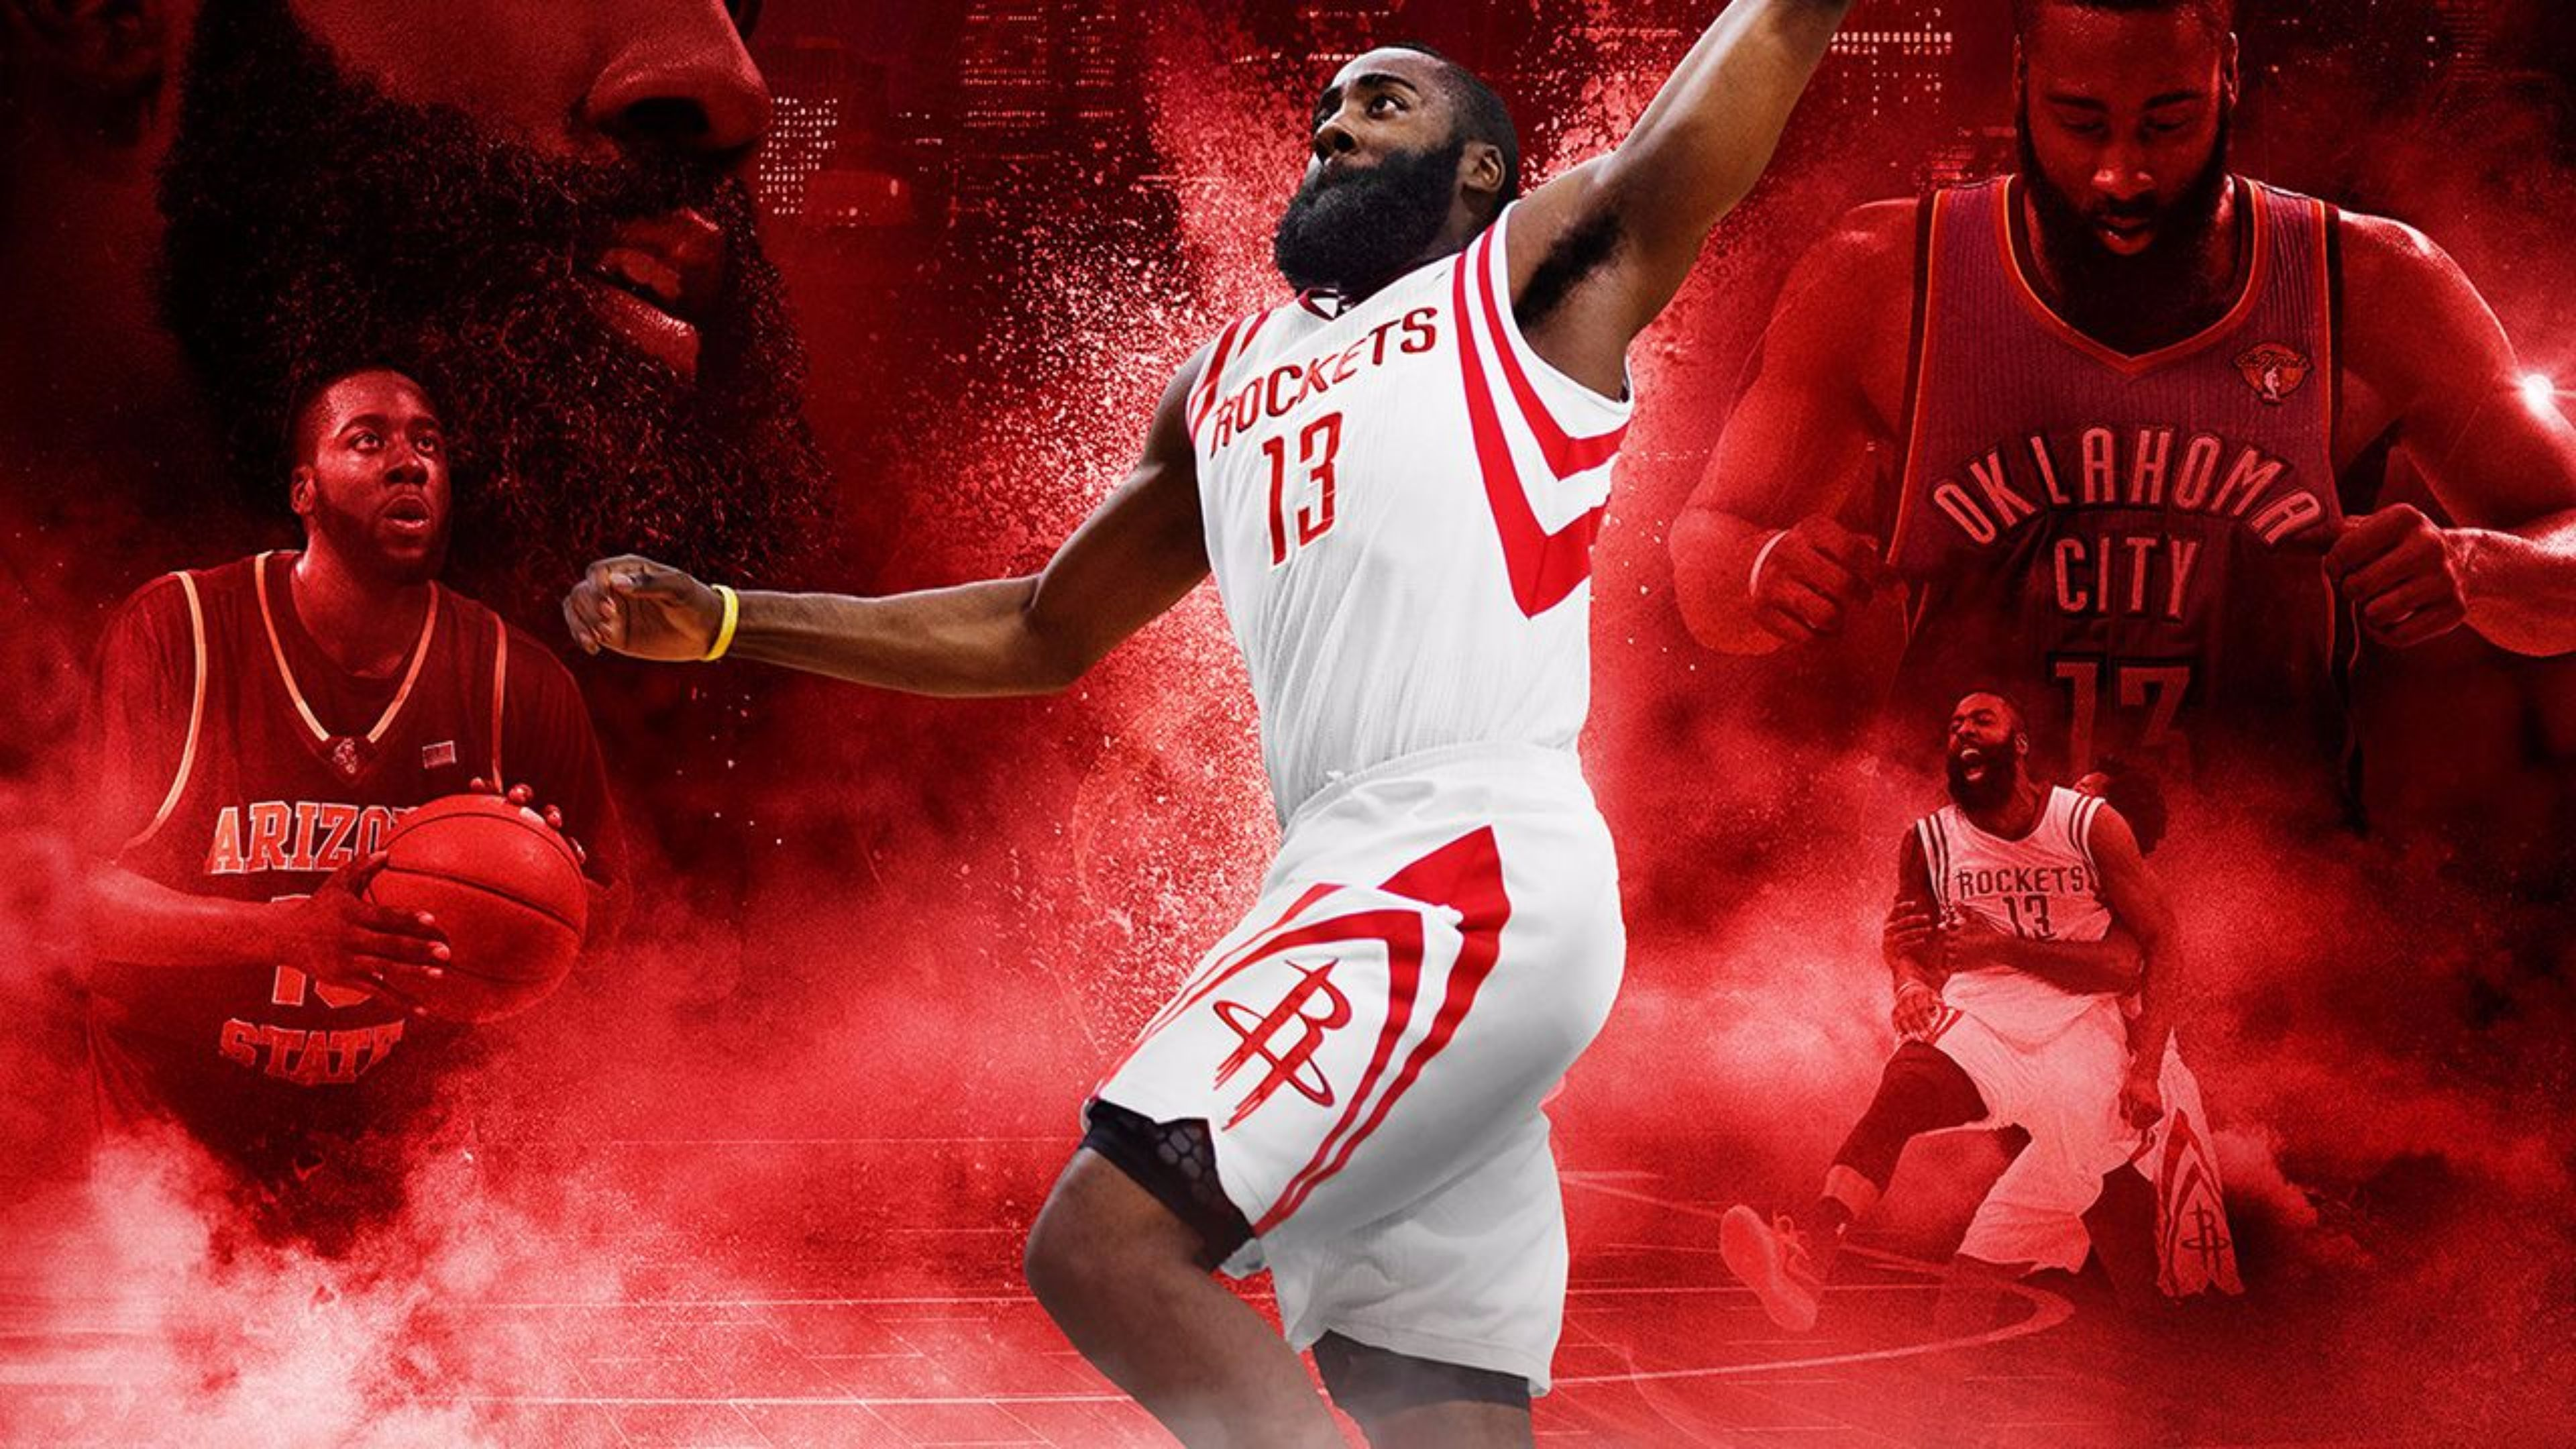 James Harden Wallpaper 3d James Harden Wallpapers Hd Pixelstalk Net